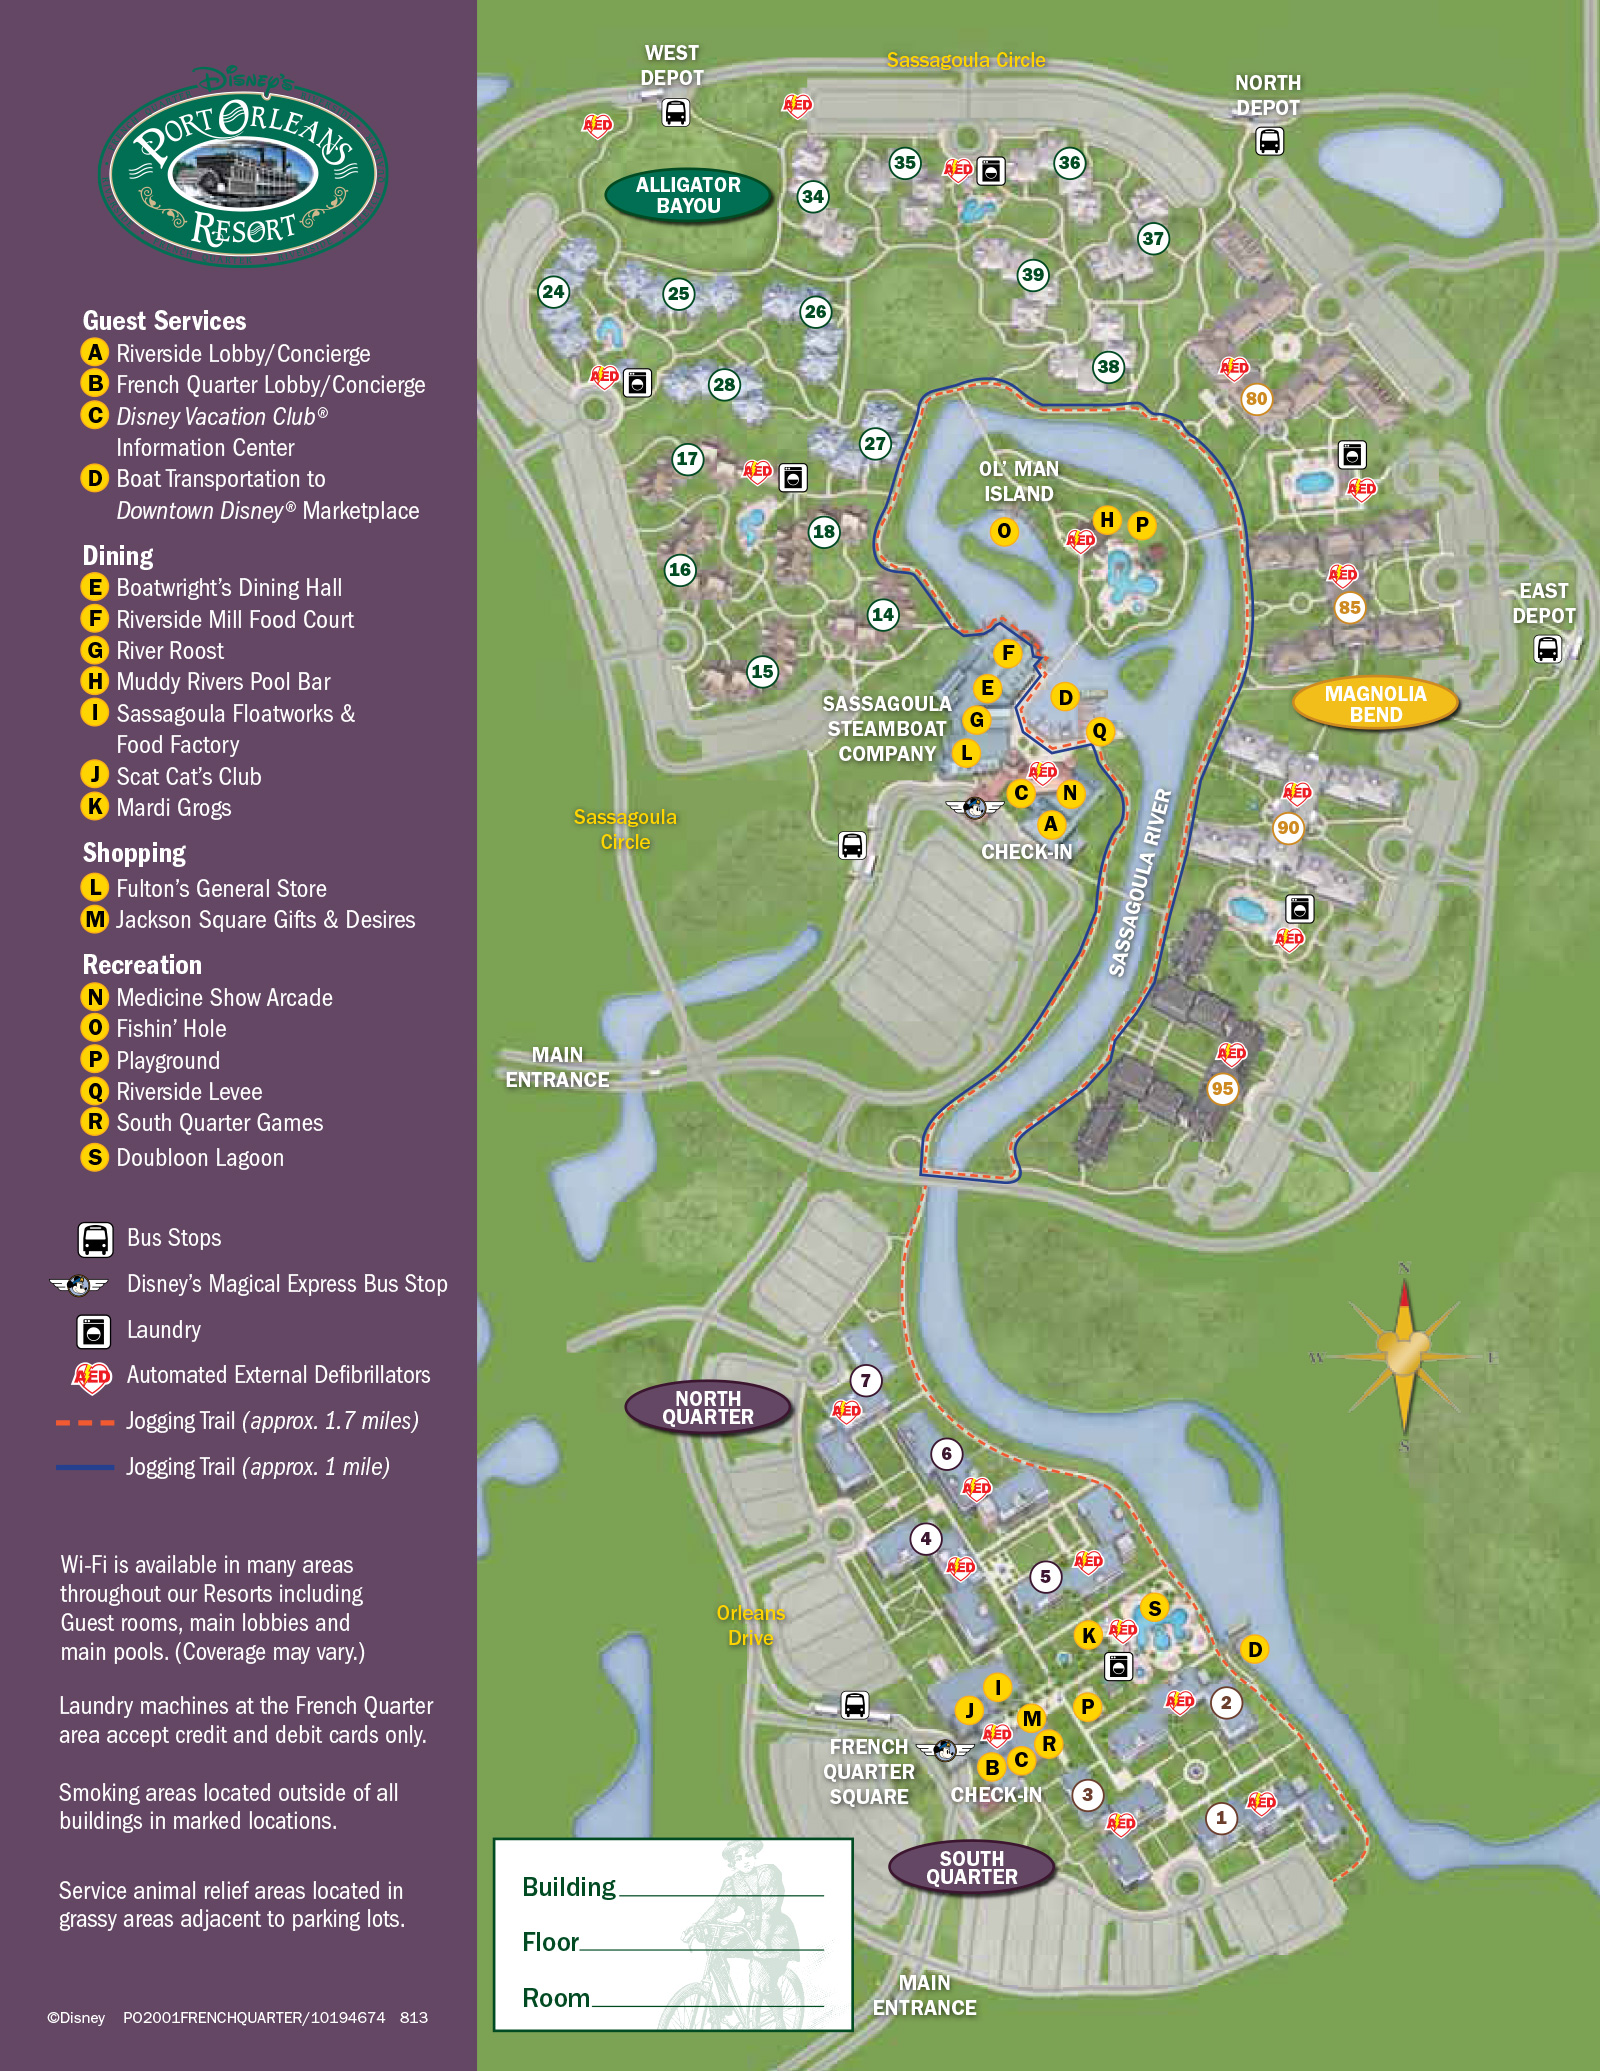 2013 Port Orleans French Quarter guide map